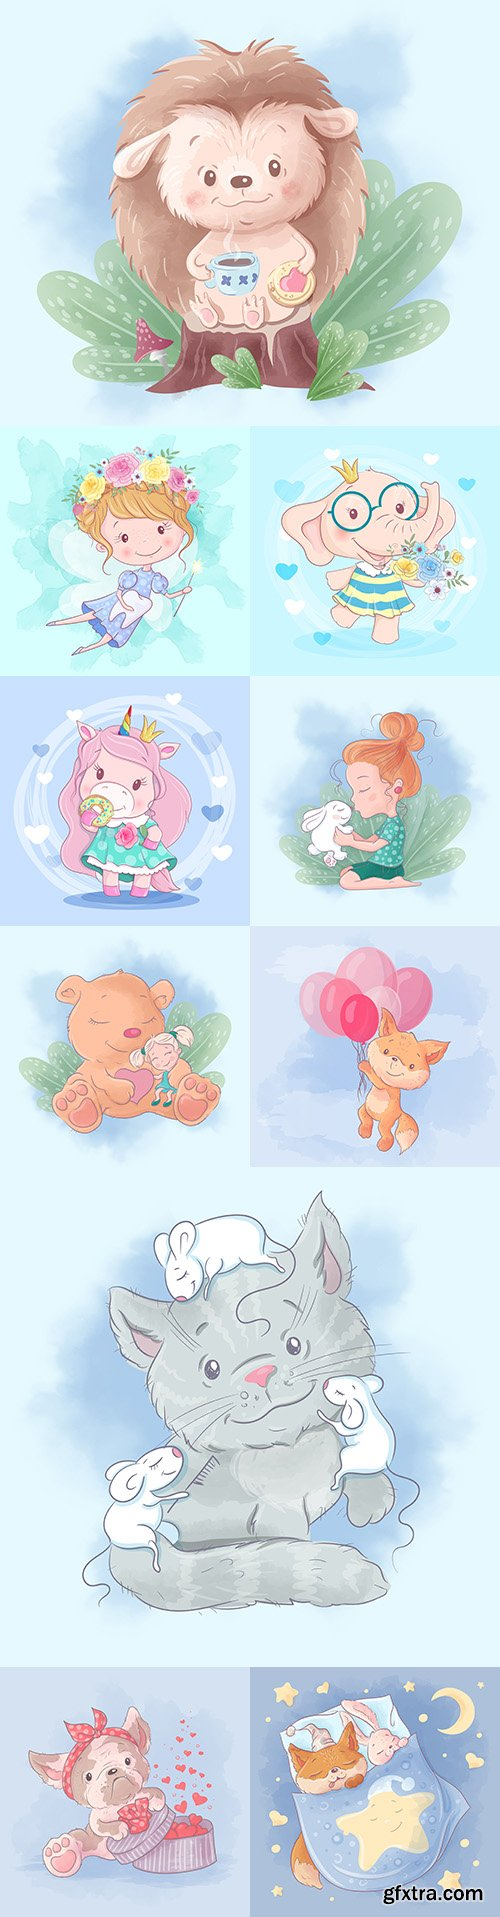 Cute cartoon animals and children watercolor illustrations 5